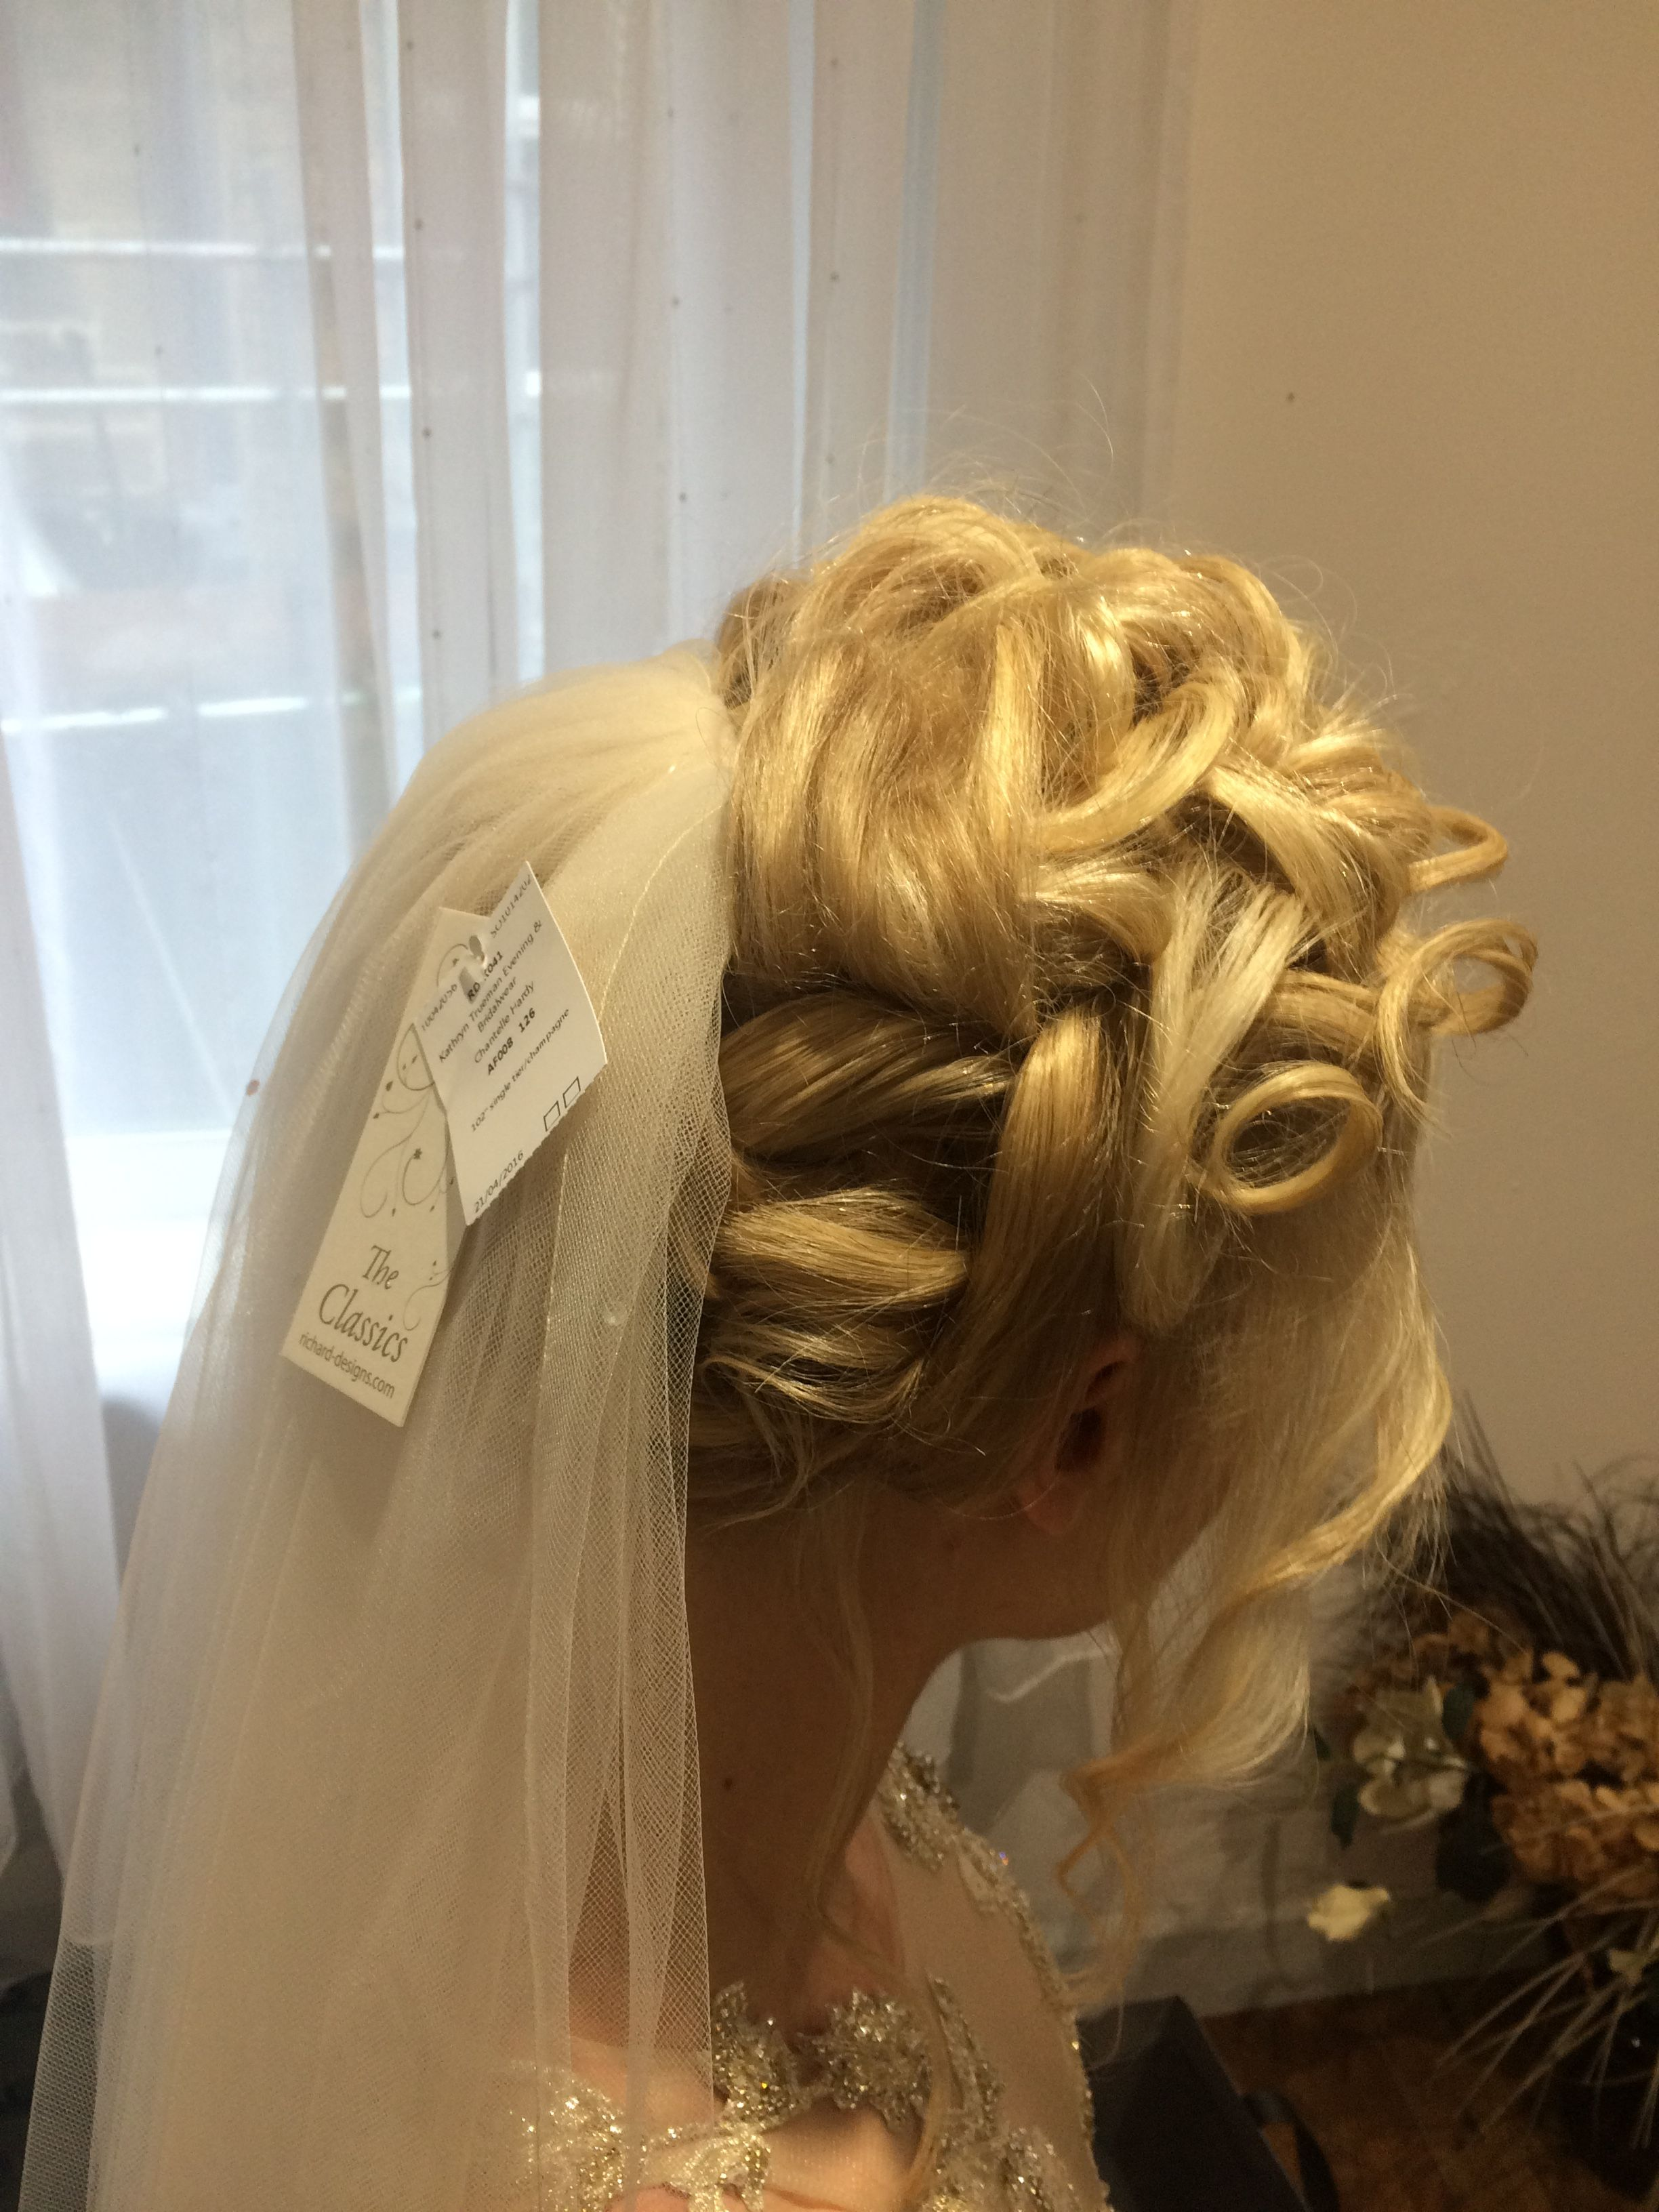 My hair trial with veil in u dress on up do hair with curls